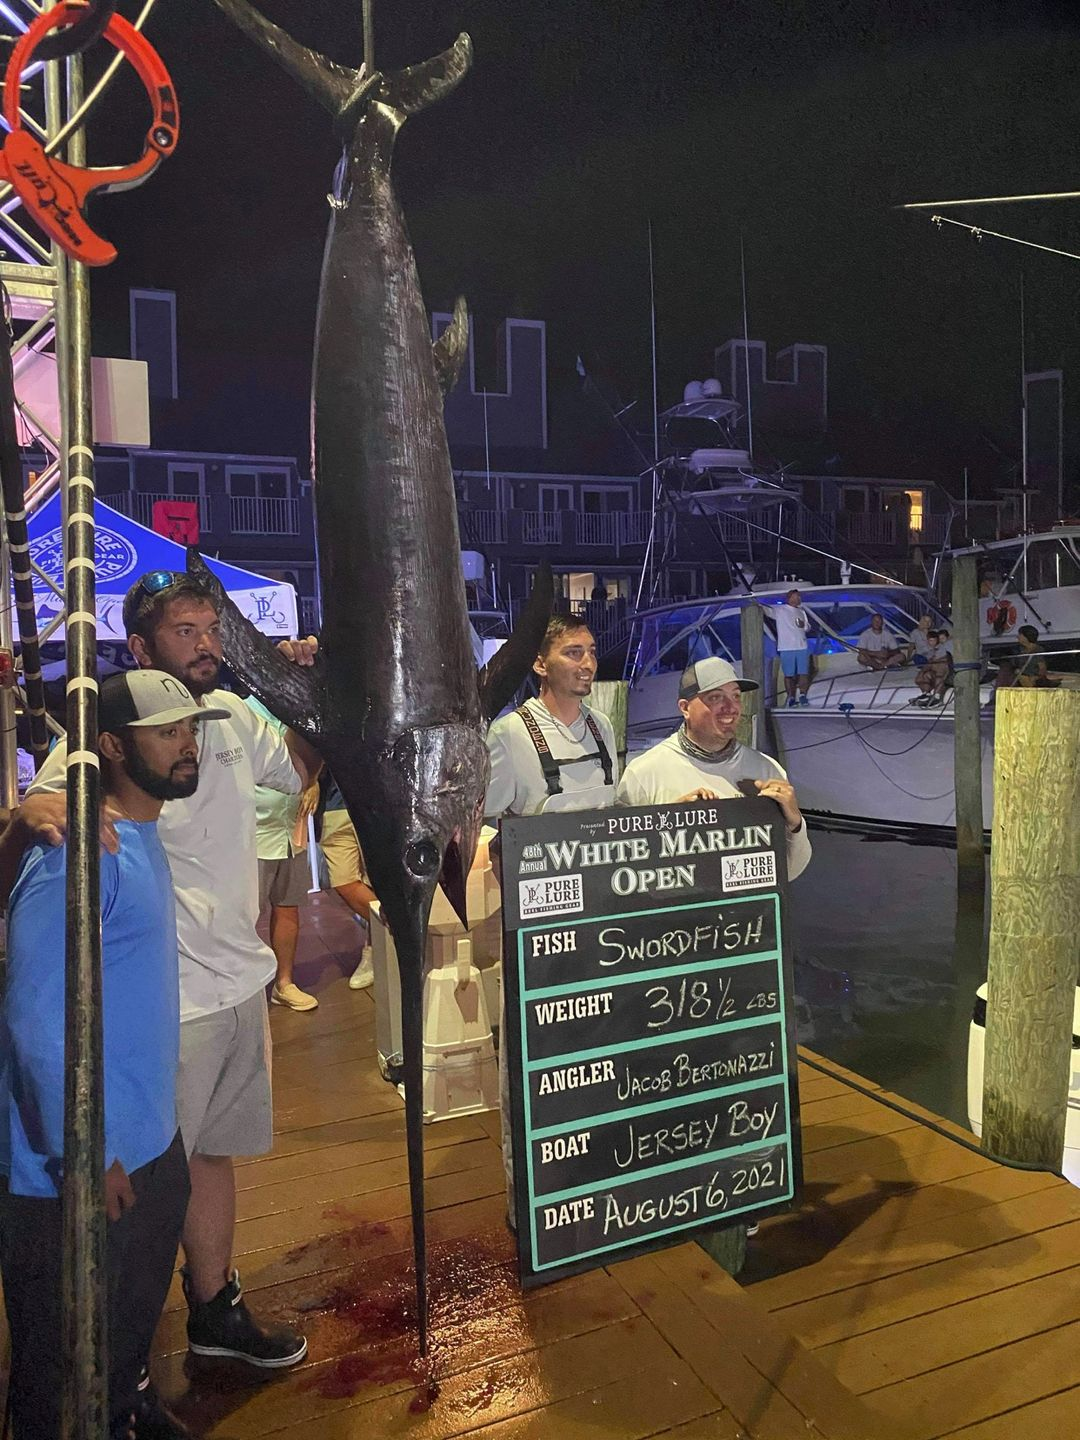 The new Maryland state swordfish record, broken in August 2021.